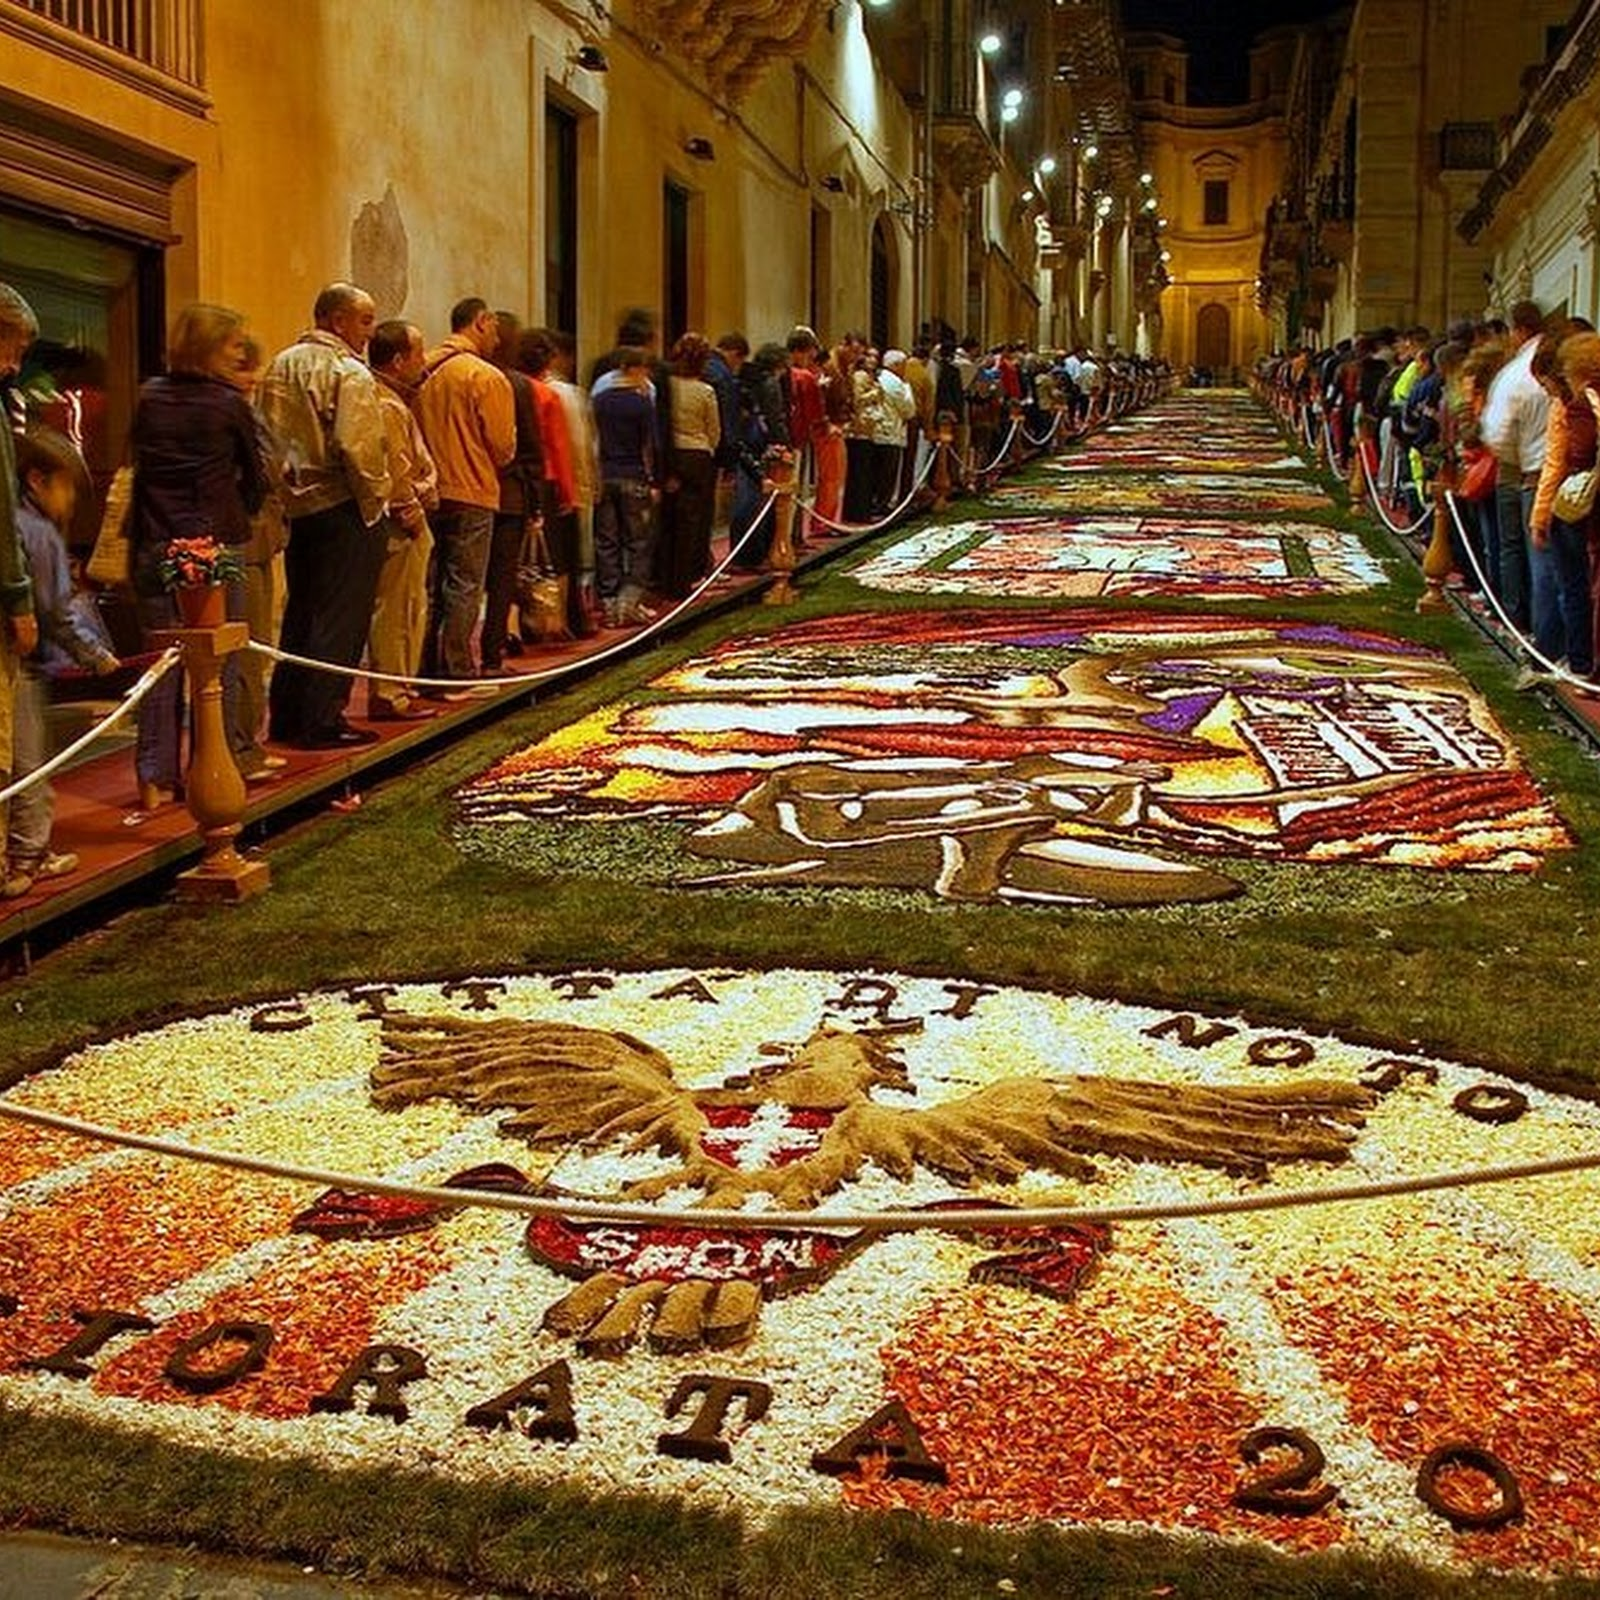 Flower Carpets at Infiorata Festival, Italy